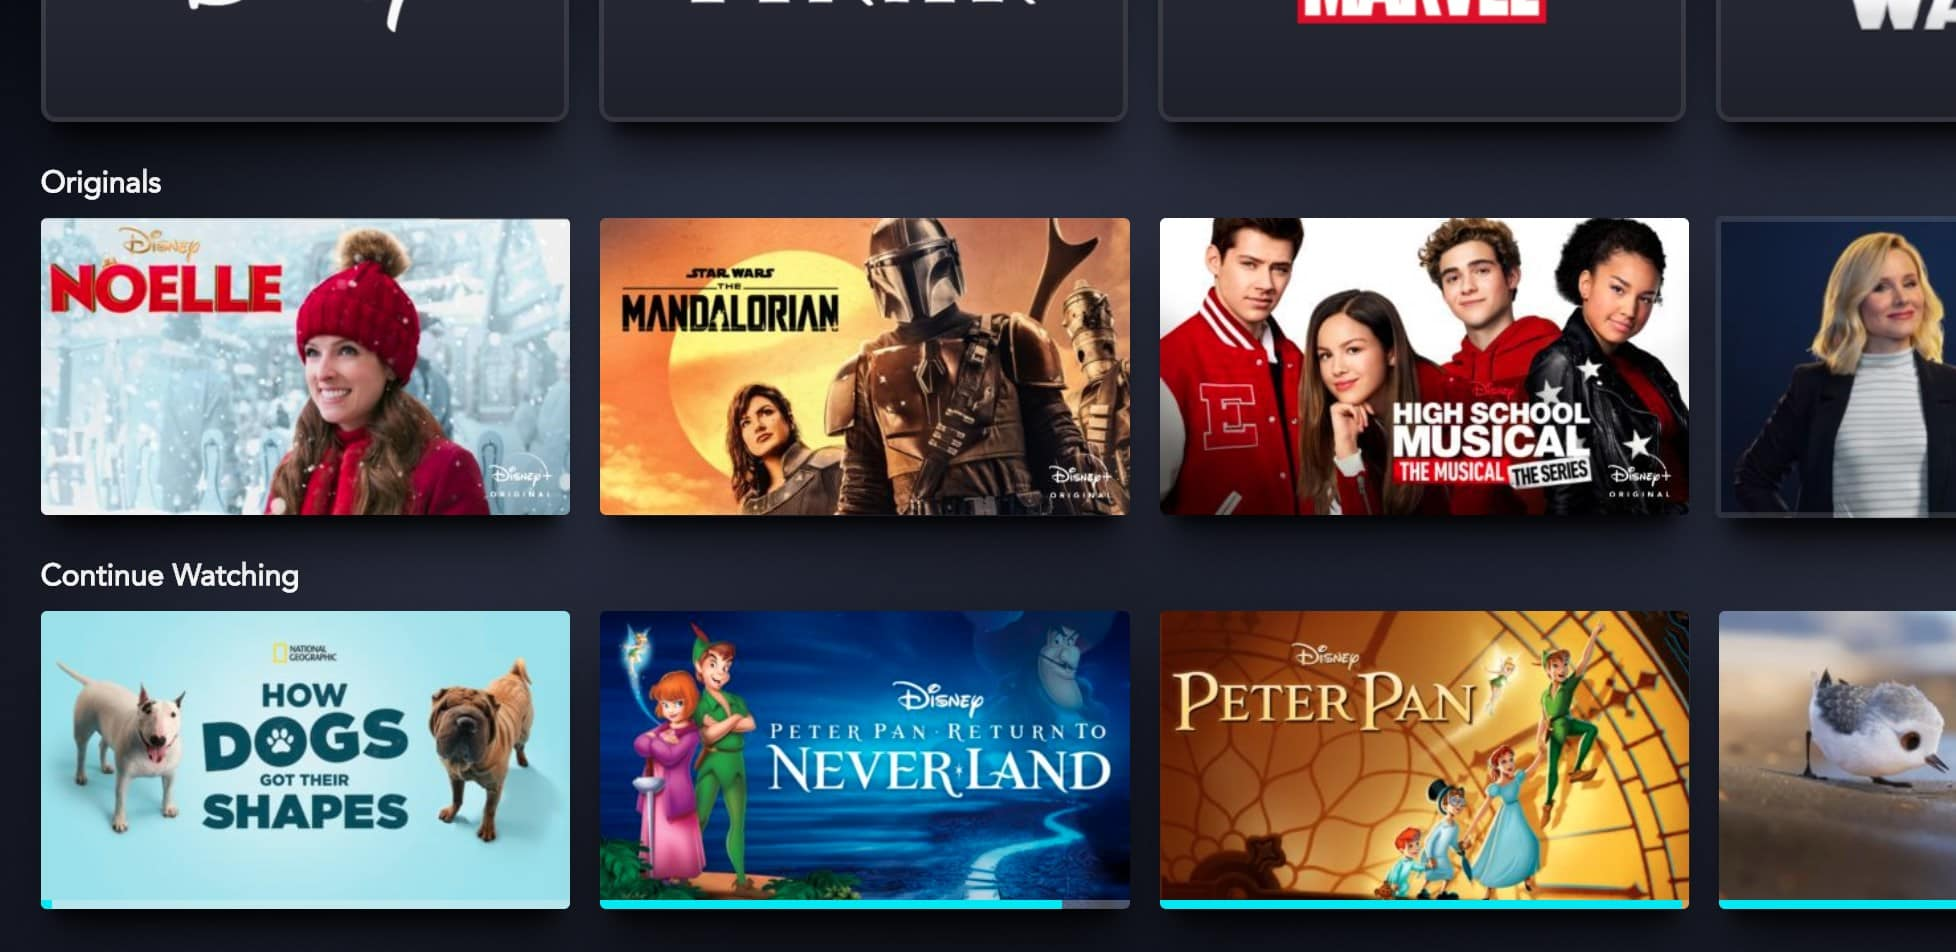 Disney has just added the most requested feature in Disney+